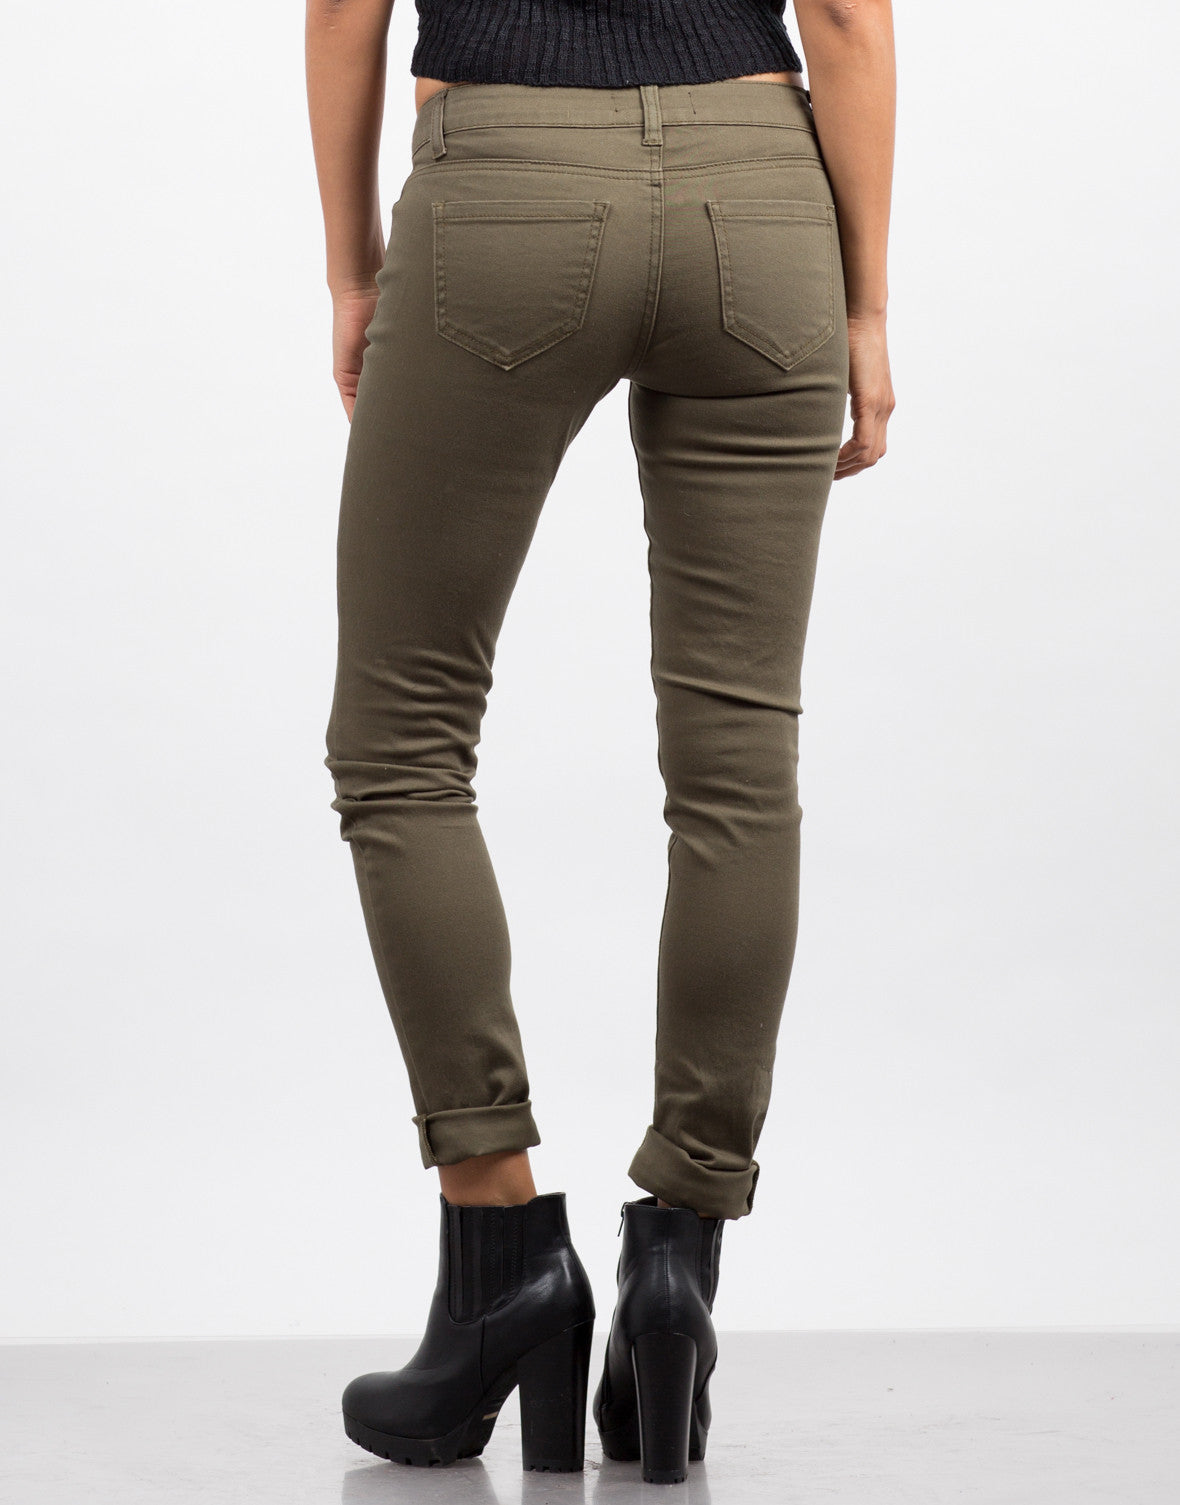 Back  View of Basic 5 Pocket Skinny Jeans - Olive